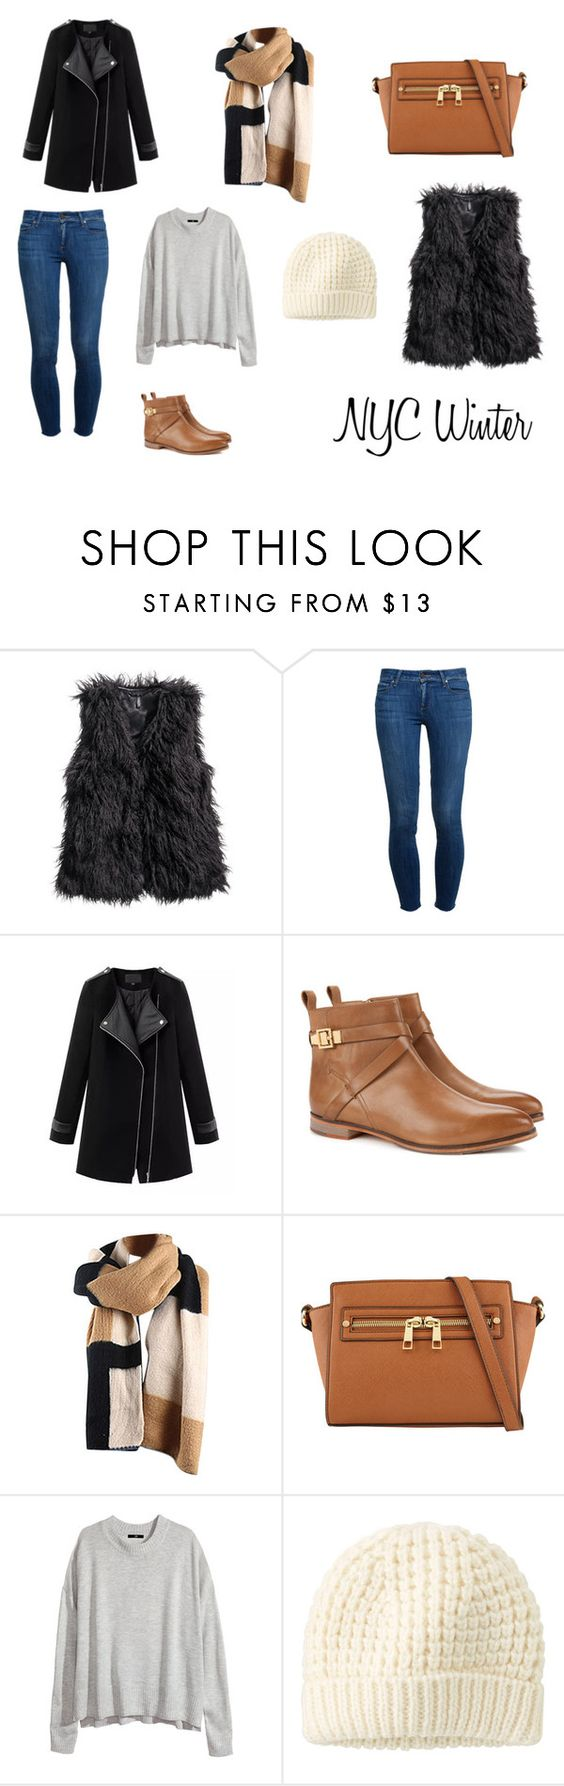 """NYC Winter"" by iwanttotravel ❤ liked on Polyvore featuring H&M, Paige Denim, Chicnova Fashion, Ted Baker, ALDO and Uniqlo"